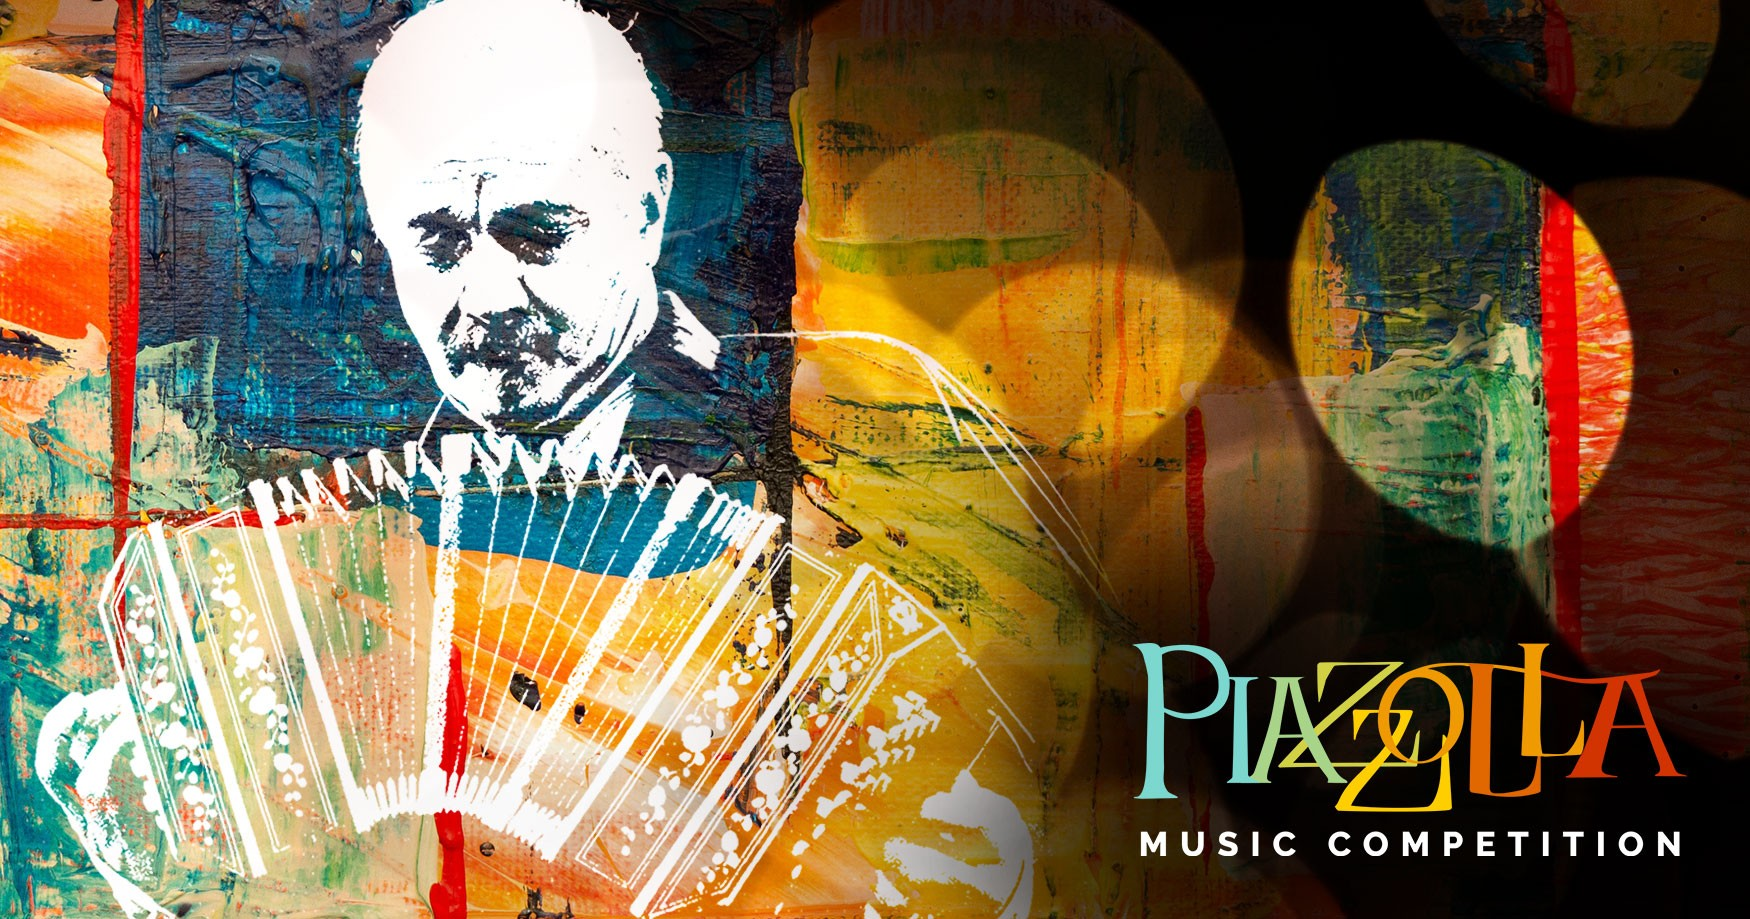 Piazzolla Music Competition